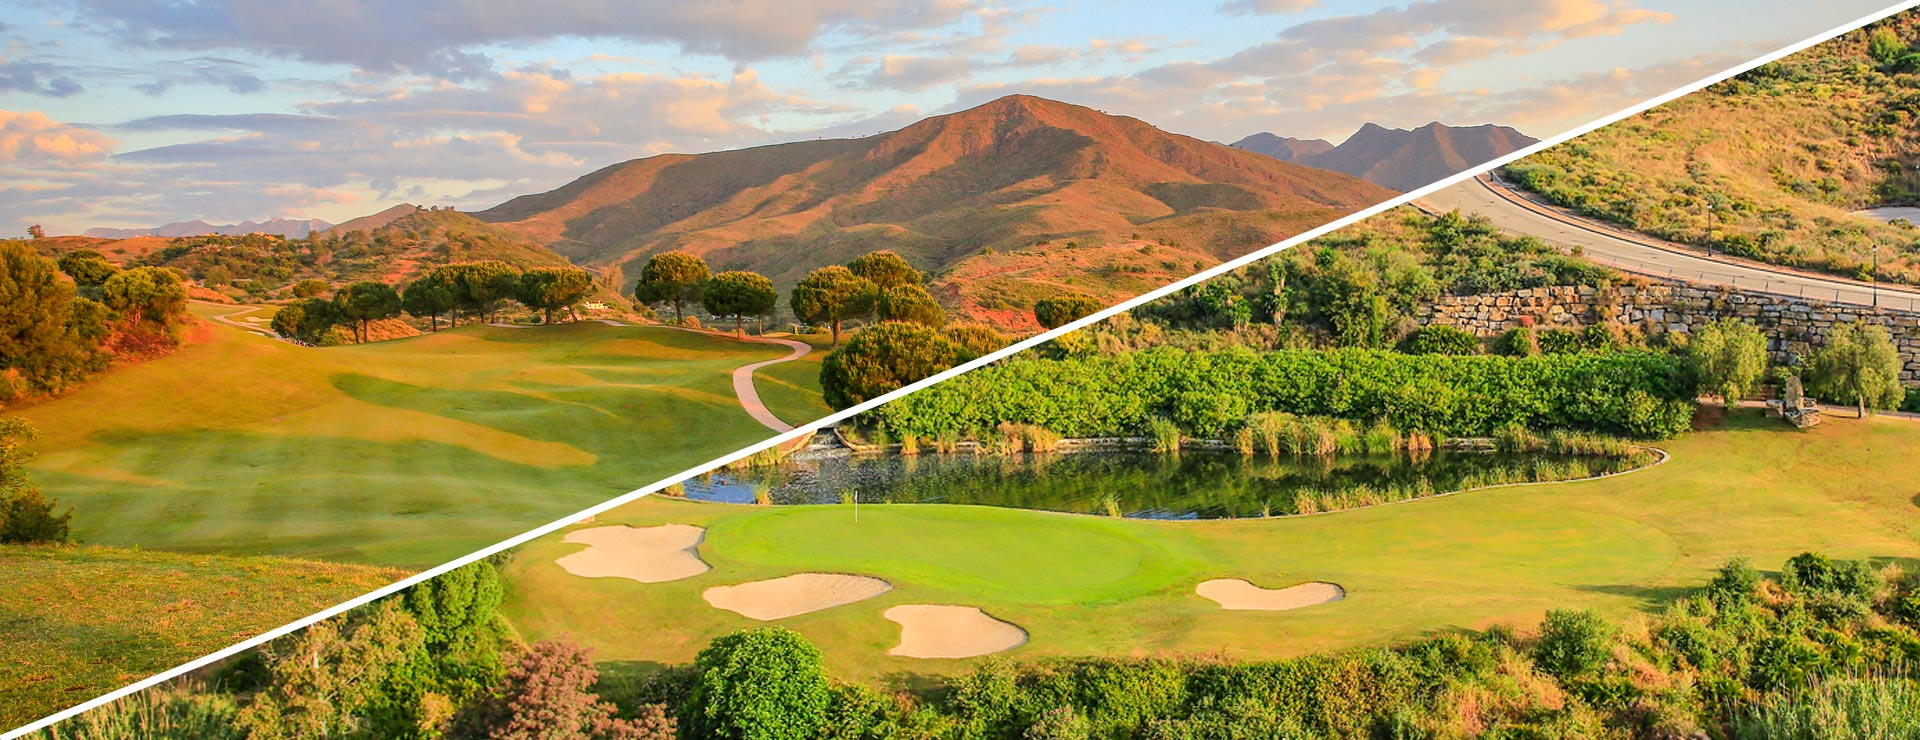 La Cala Resort Hotel Golf Spa And Residential In Costa